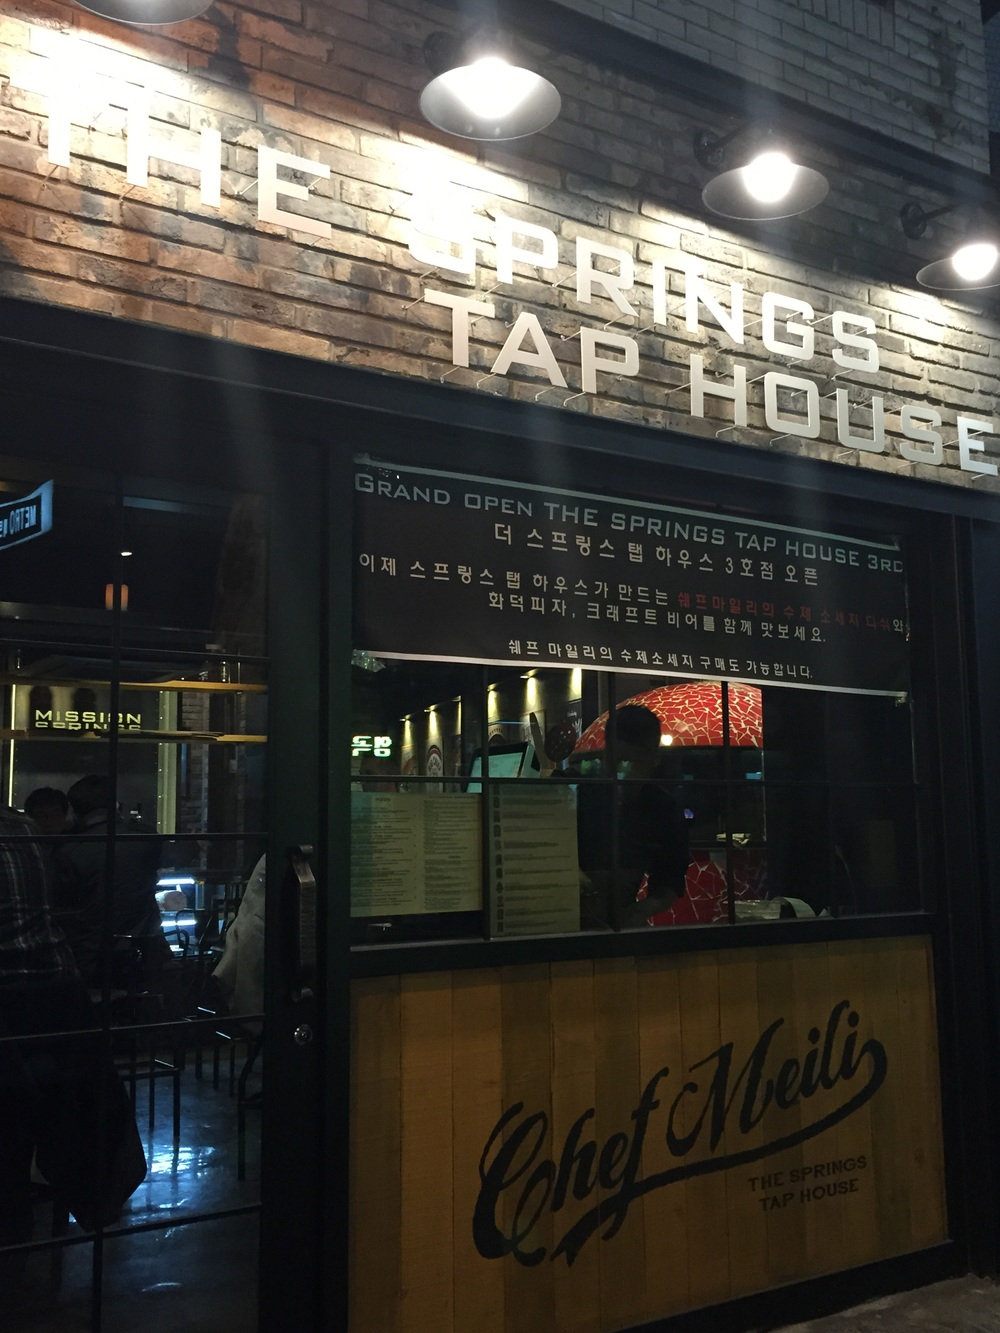 Great location, great small but cozy new joint of The Springs Tap House blended with history of ChezMeili Deli! Exact same location of where the old Chez Meili Deli was (right across from Taco Bell!)